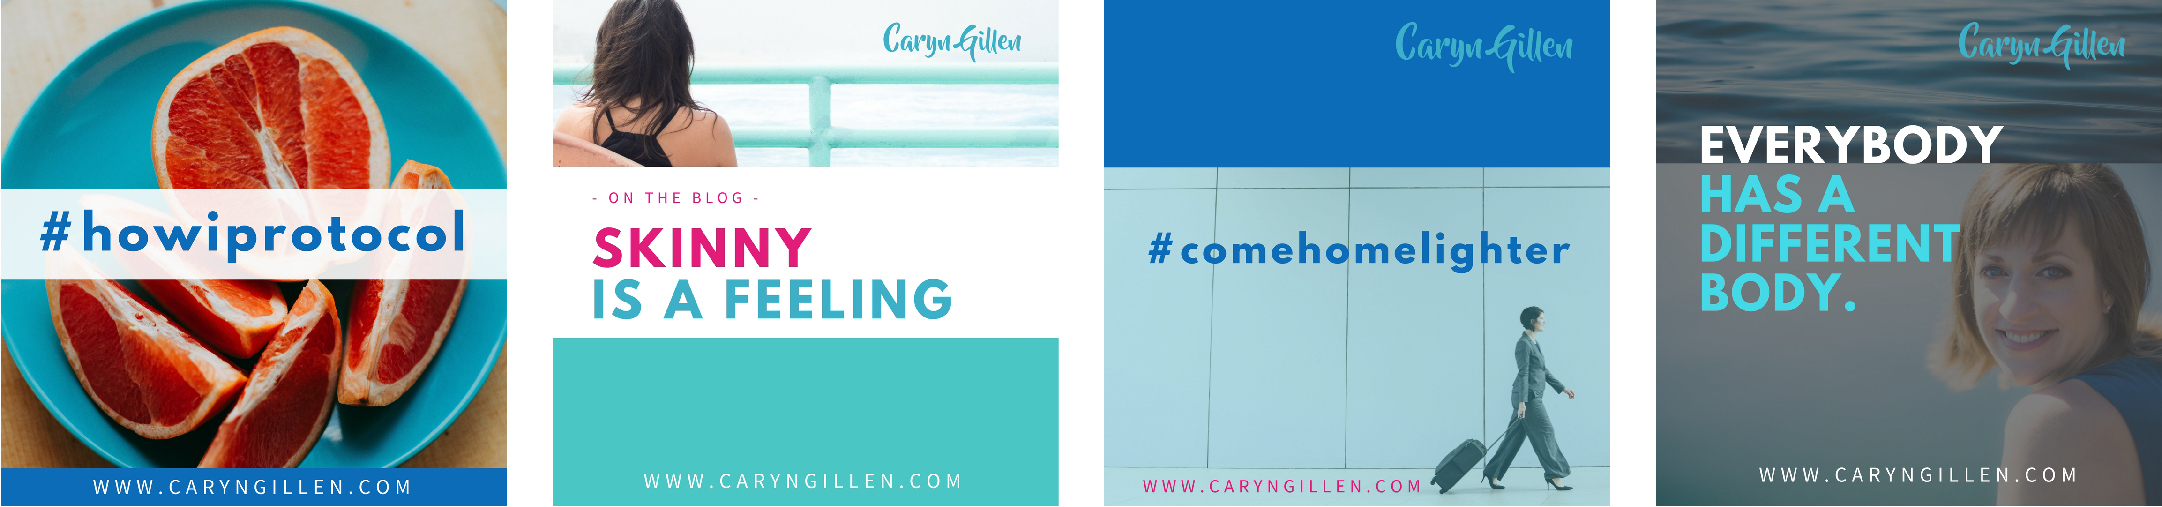 A peek behind the scenes at the Custom Social Media Templates for Caryn Gillen by Let Her Fly